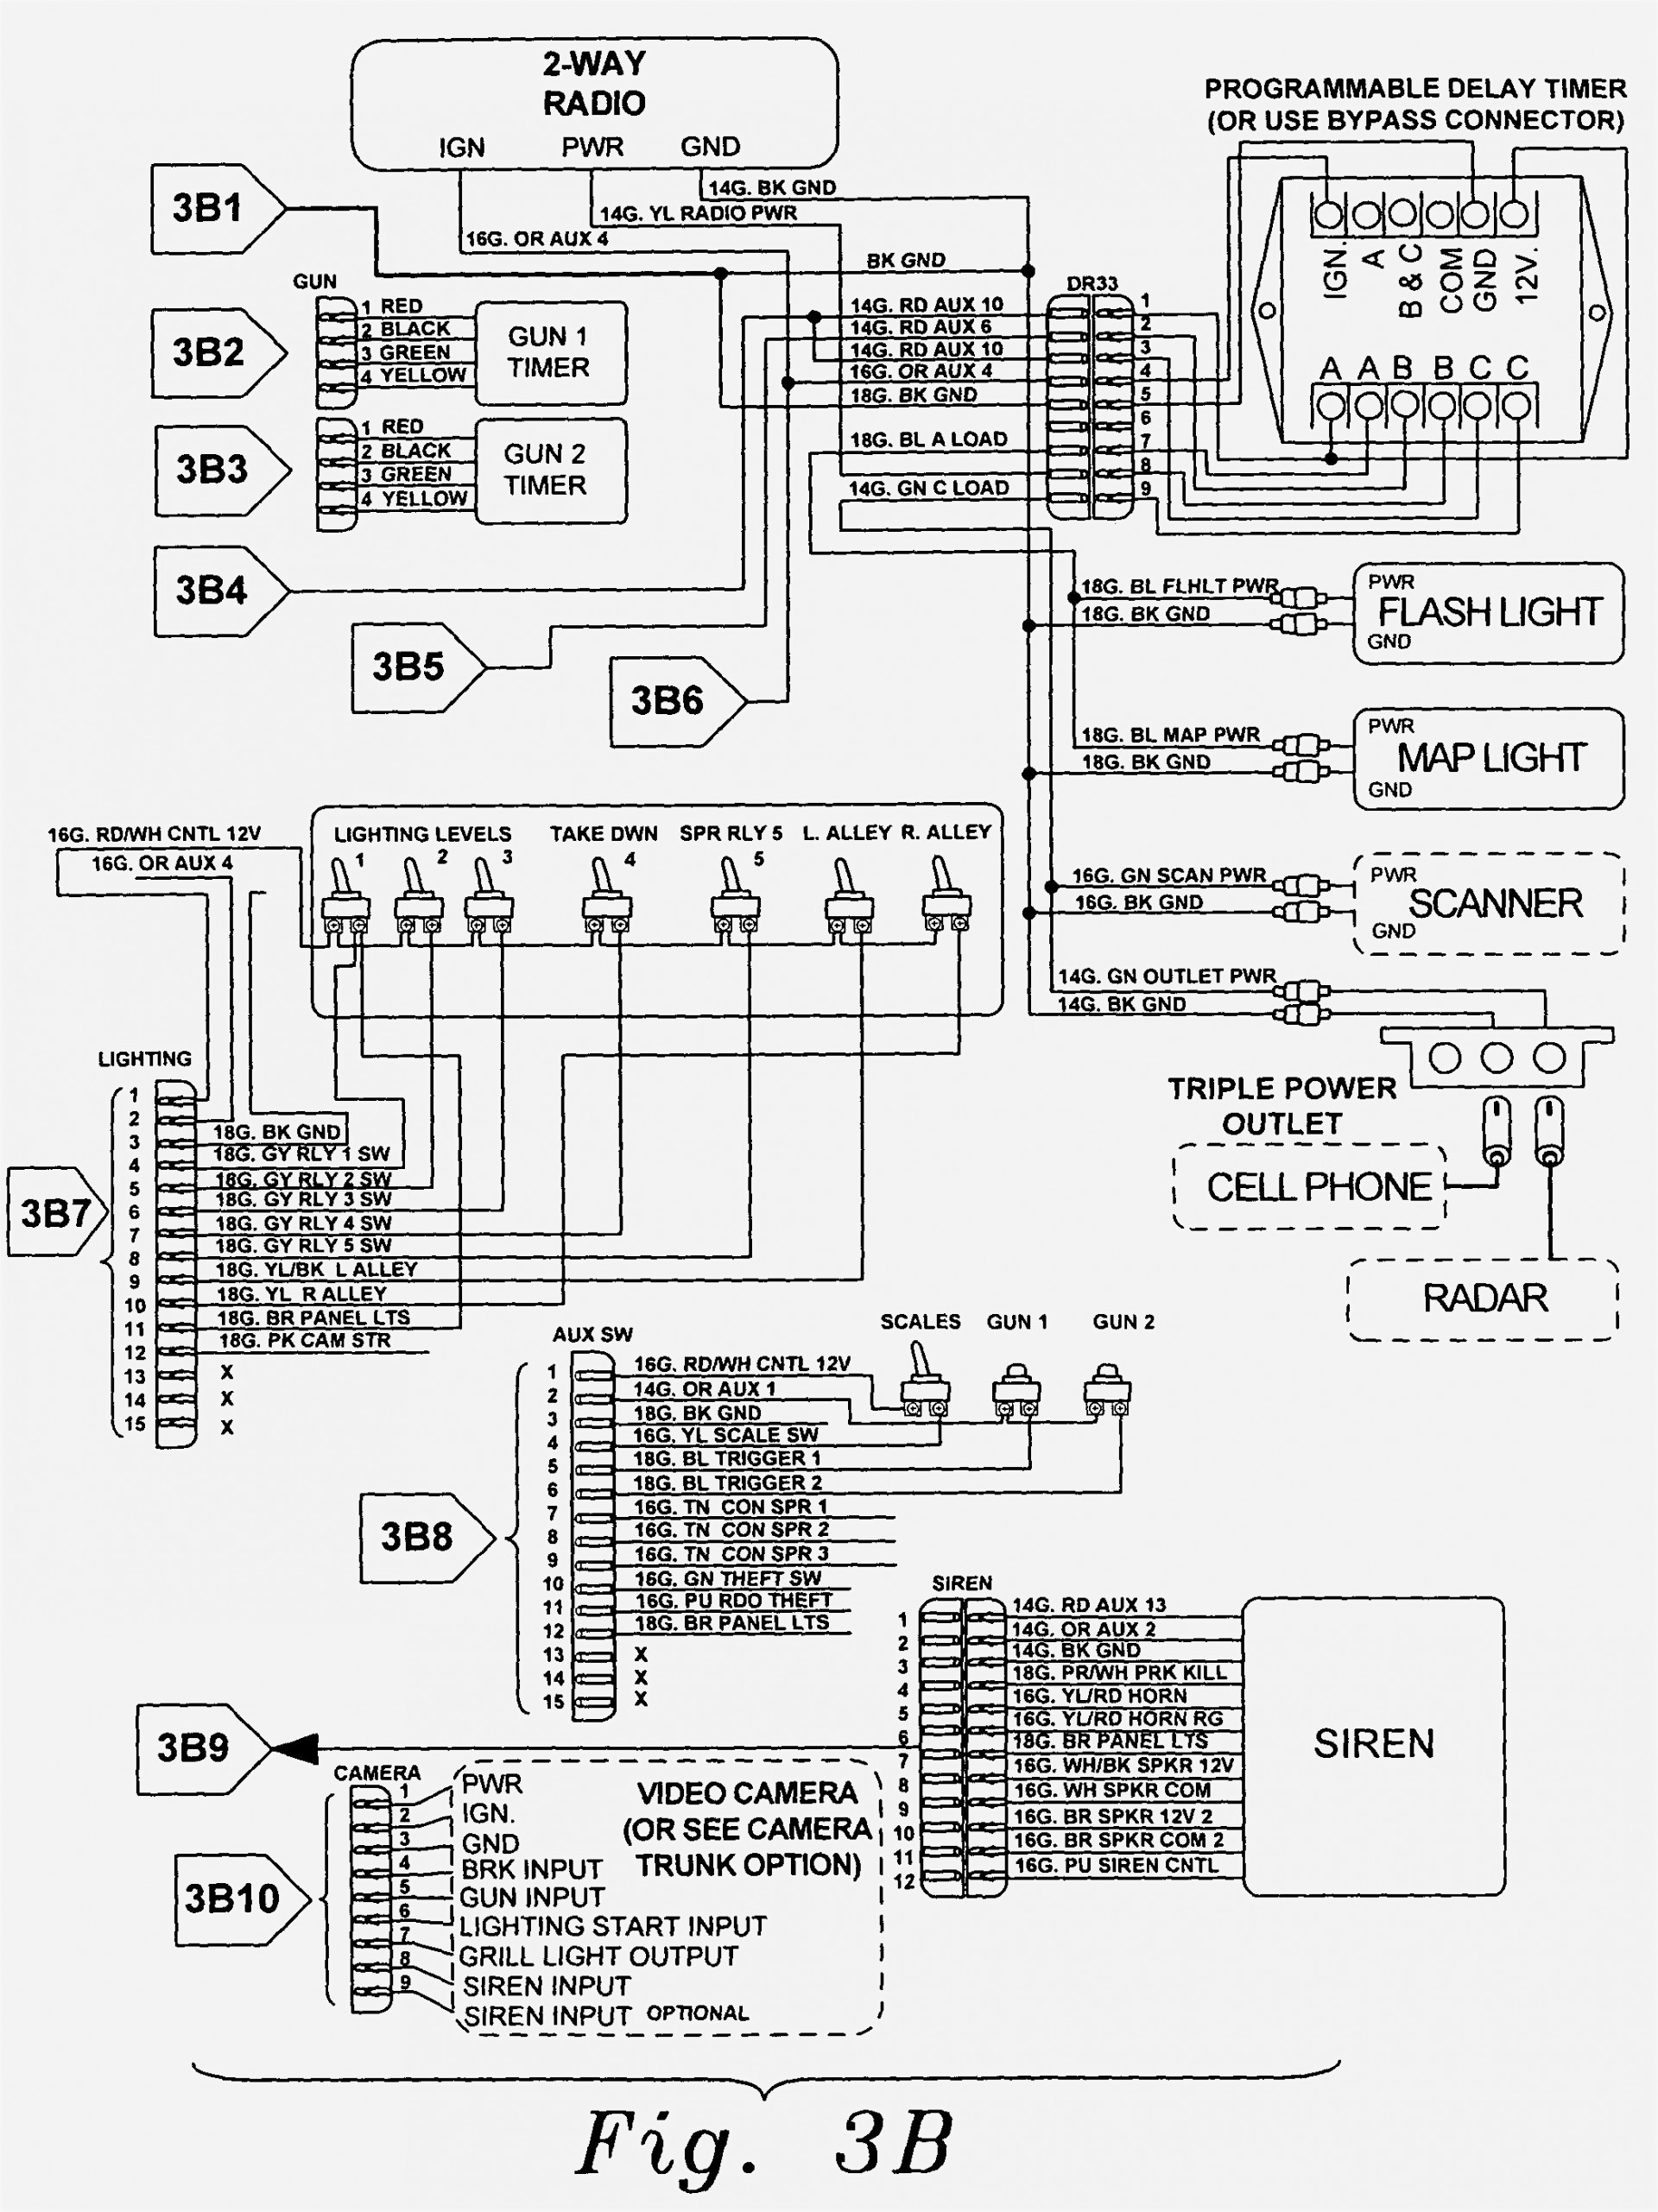 Whelen Mpc01 Wiring Diagram | Wiring Diagram on whelen emergency-lights, whelen patriot lightbar wiring, whelen pa 300 siren, whelen siren 295hfsa1, whelen flasher wiring-diagram, whelen 9m light bar wire diagram, whelen edge 9004 wiring-diagram, whelen liberty light bar, whelen siren wiring, whelen edge 9000 manual, whelen edge lightbar, strobe light wiring diagram, whelen inner edge wiring-diagram, whelen light bar replacement lenses, whelen liberty wiring-diagram, whelen mini led light bar, whelen edge 9000 wiring, whelen wiring schematics, whelen legacy light bar, simple chopper wiring diagram,